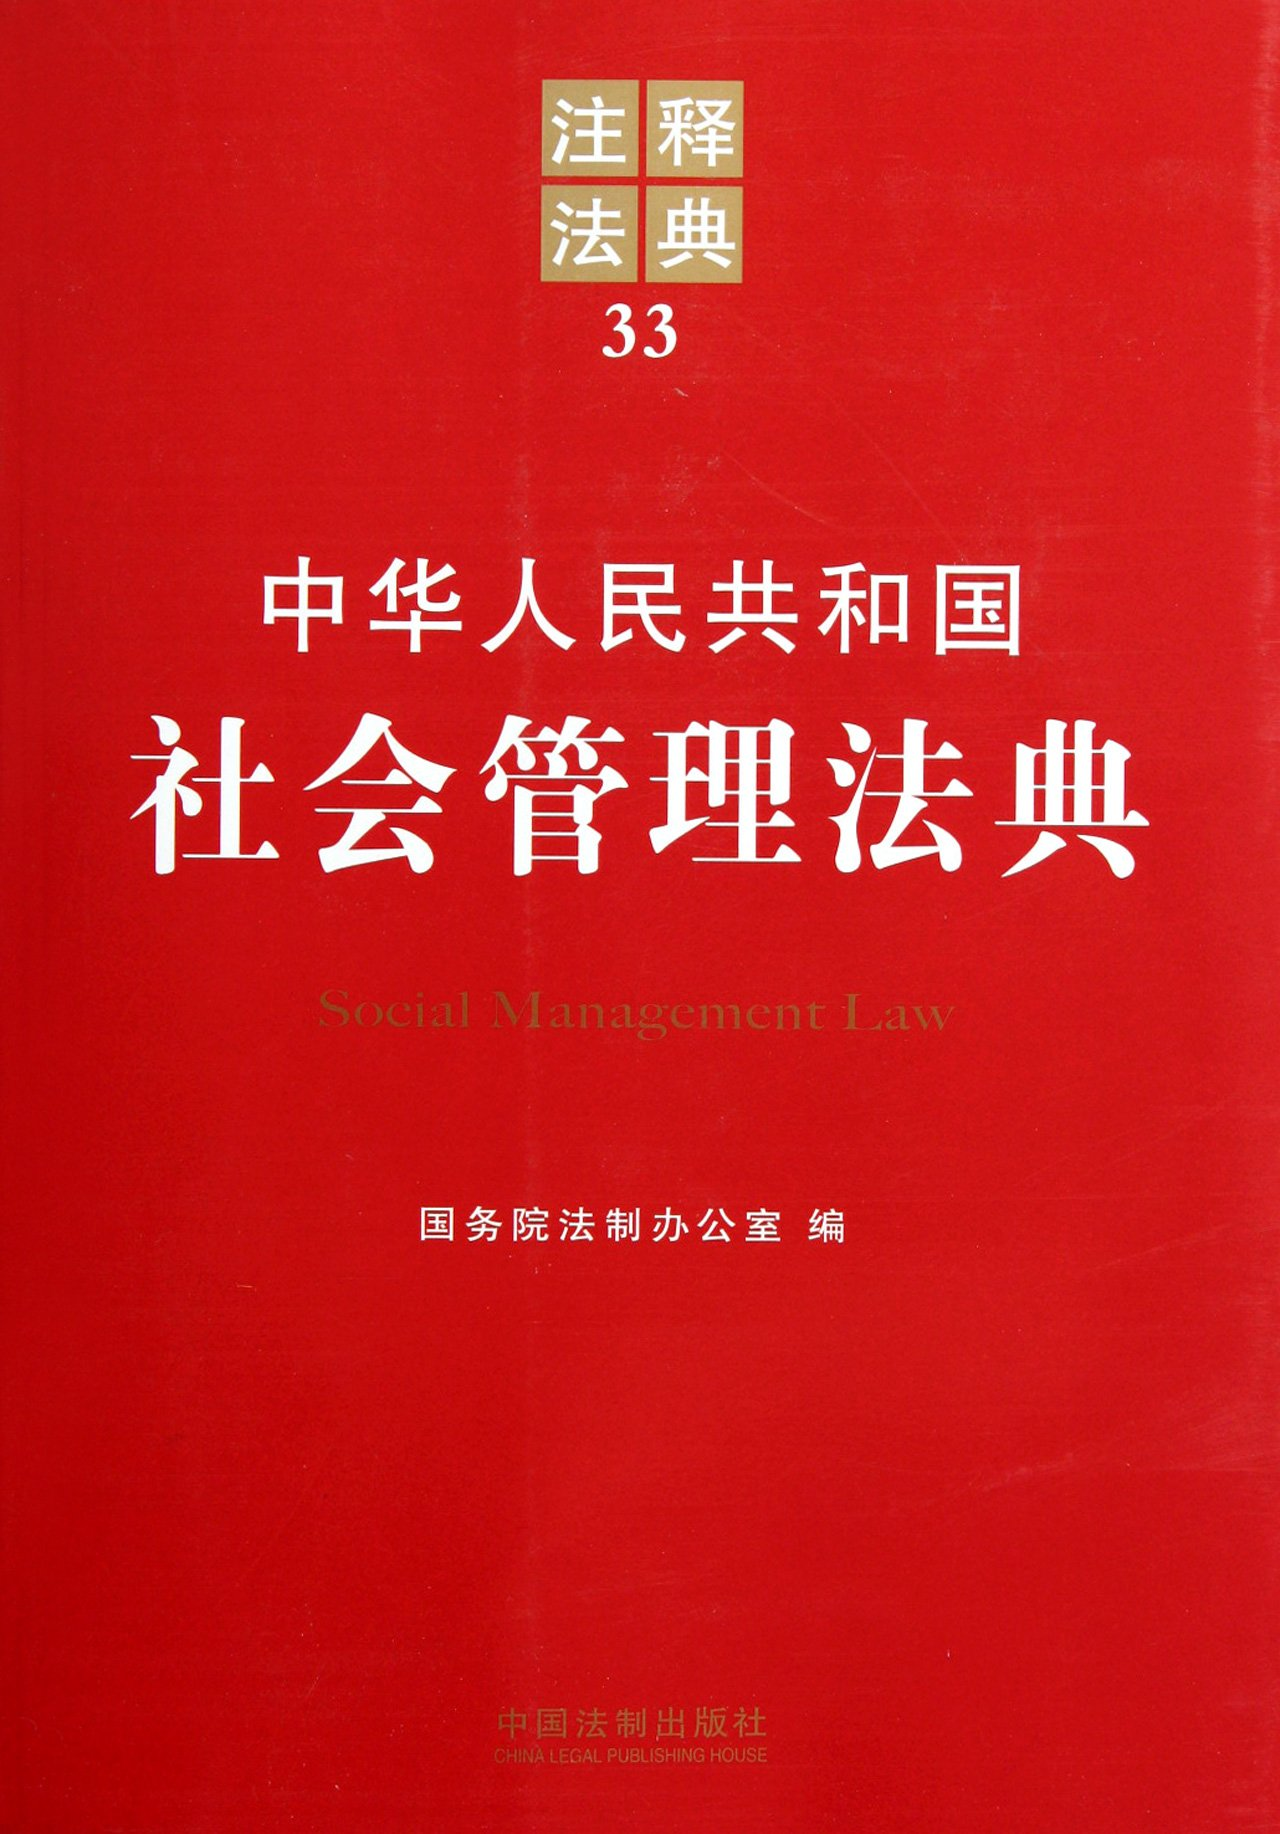 Download Social Administration of the People's Republic of China-the annotation code 33 (Chinese Edition) pdf epub